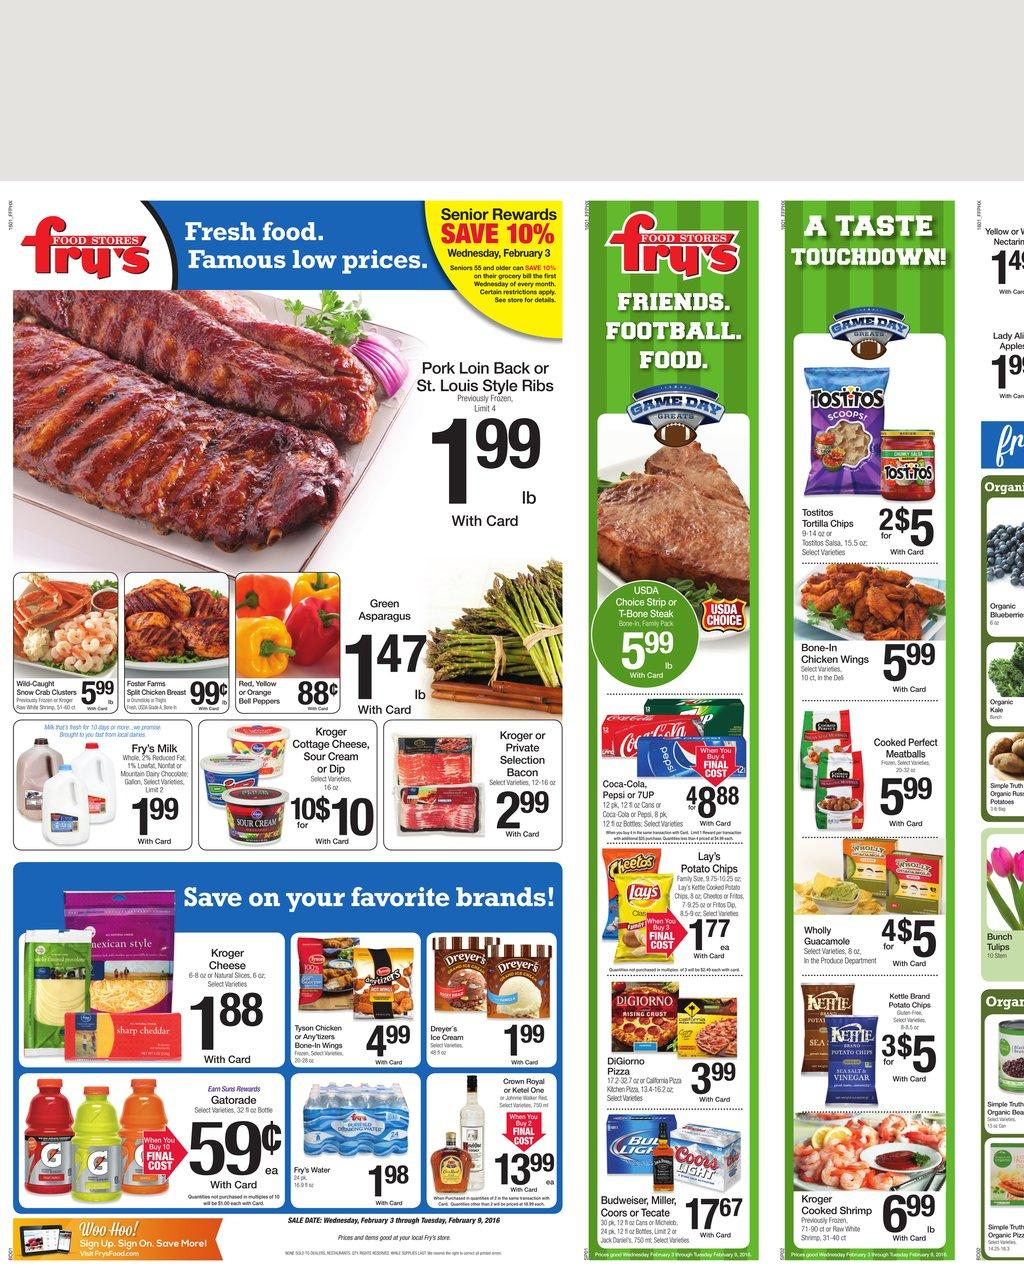 Fry's Food offers Deli & Bakery products, Party Platters, Cakes, Murray's Cheese, Natural Foods, Fresh Produce, Coinstar, Phone Cards, Western Union – Money Transfer Service, and Visa Prepaid Debit Card. Save with Fry's Food Weekly Ad. Many Fry's Food Locations have a .